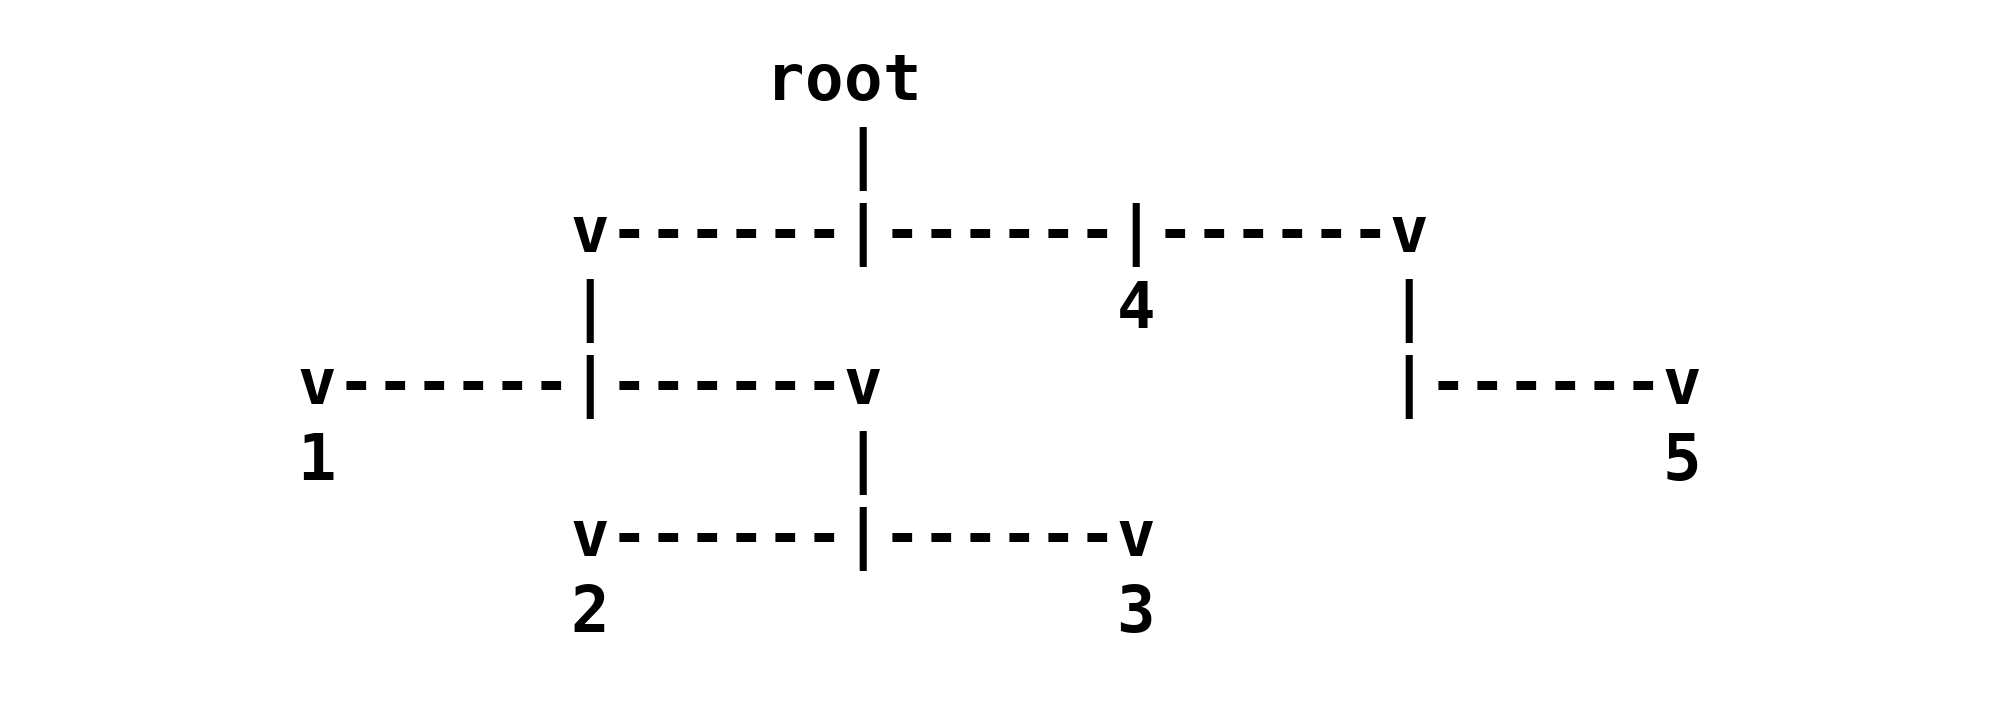 An ASCII art representation of the nested list in this article